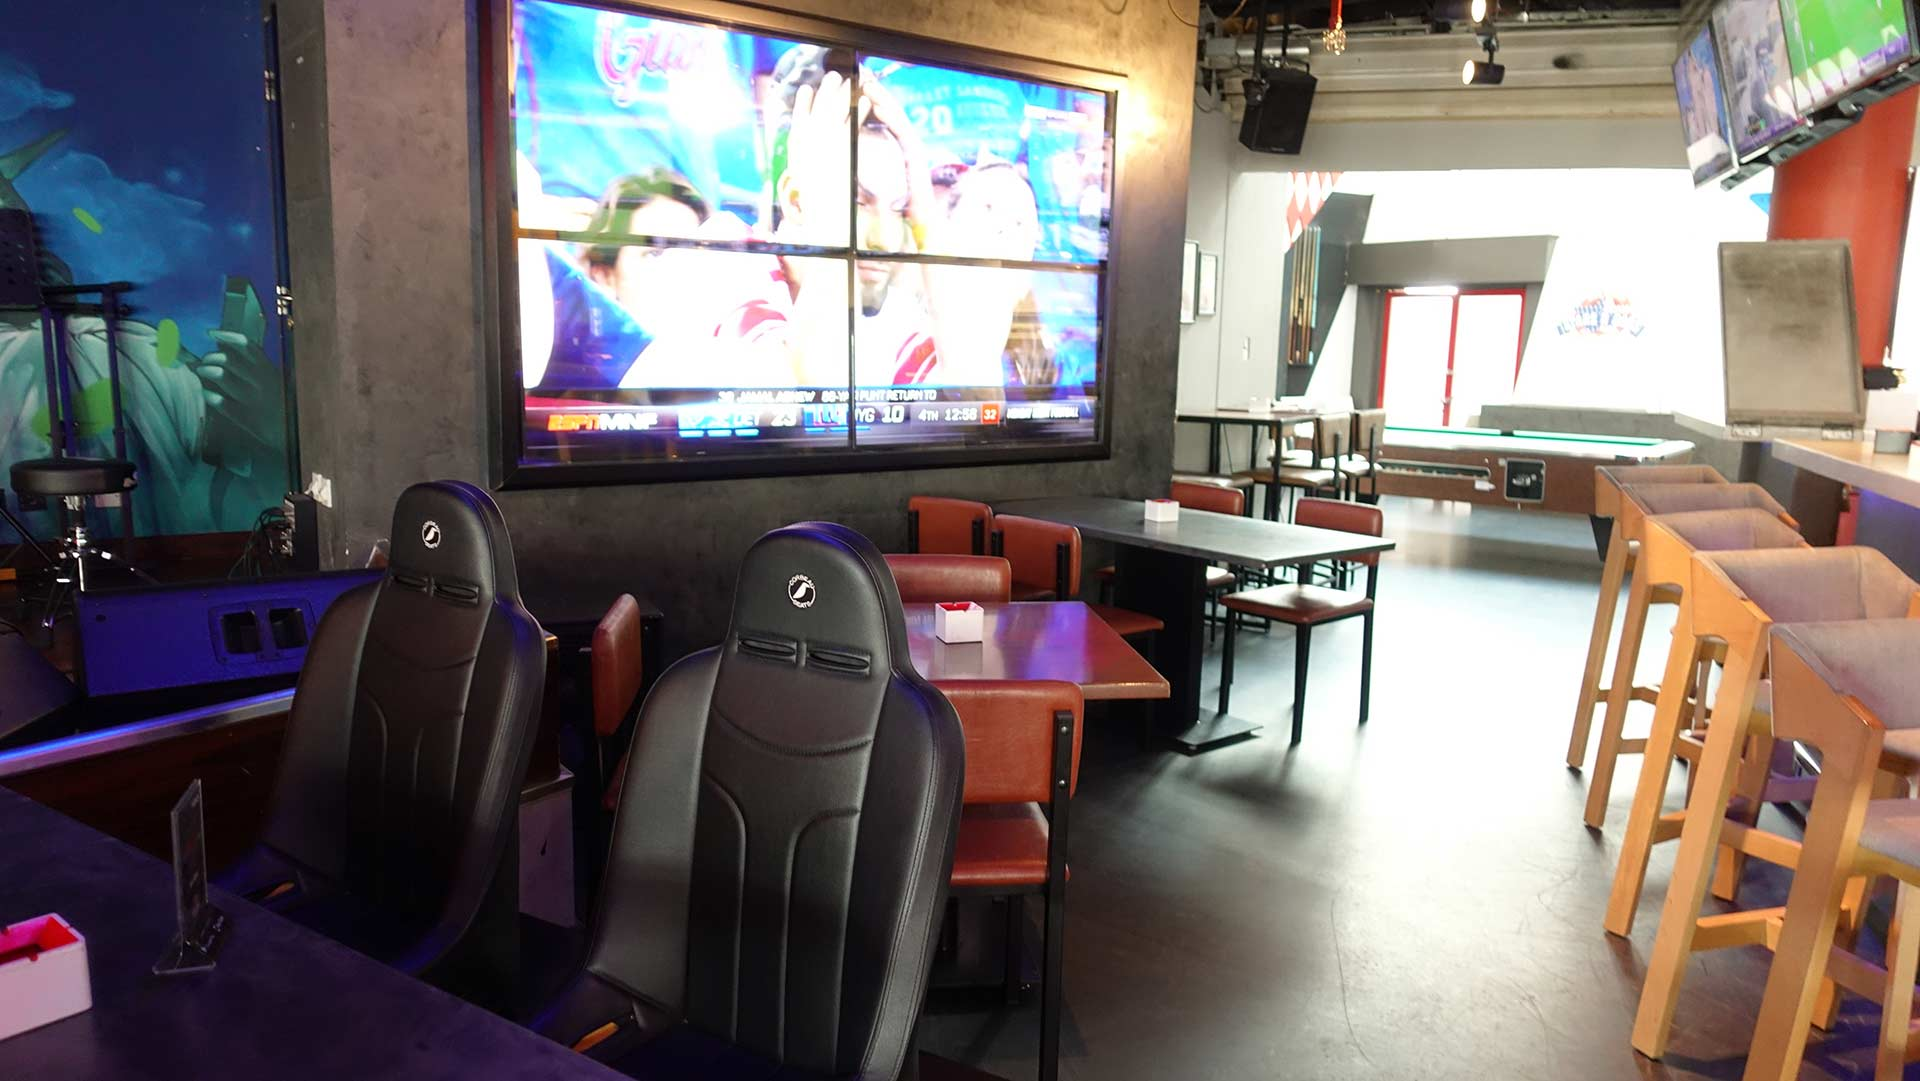 Stars N Bars - Abu Dhabi, UAE - Big Screen TV